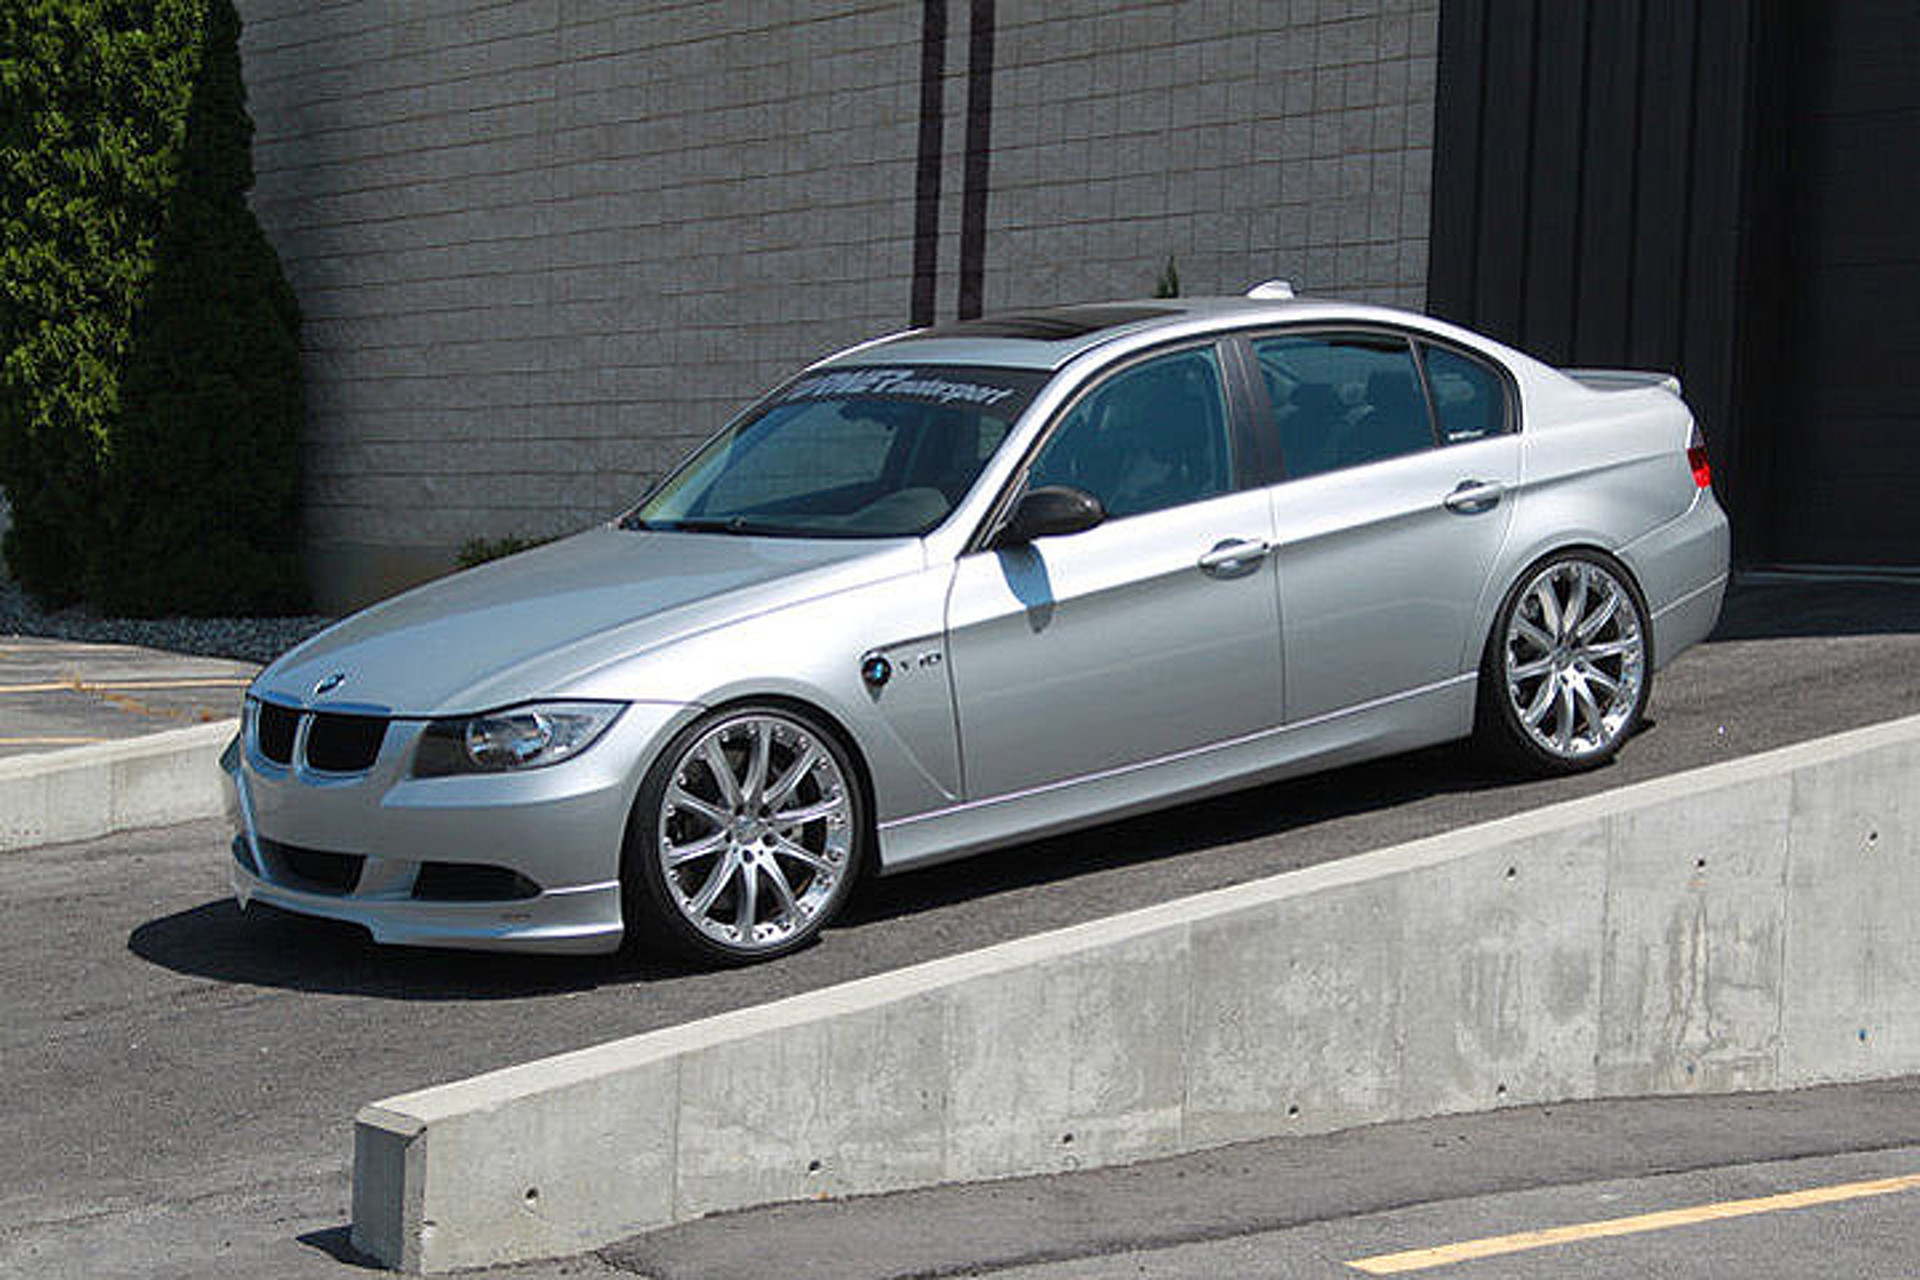 Surprise This Bmw 3 Series Packs A 550 Hp V10 Engine 1181267